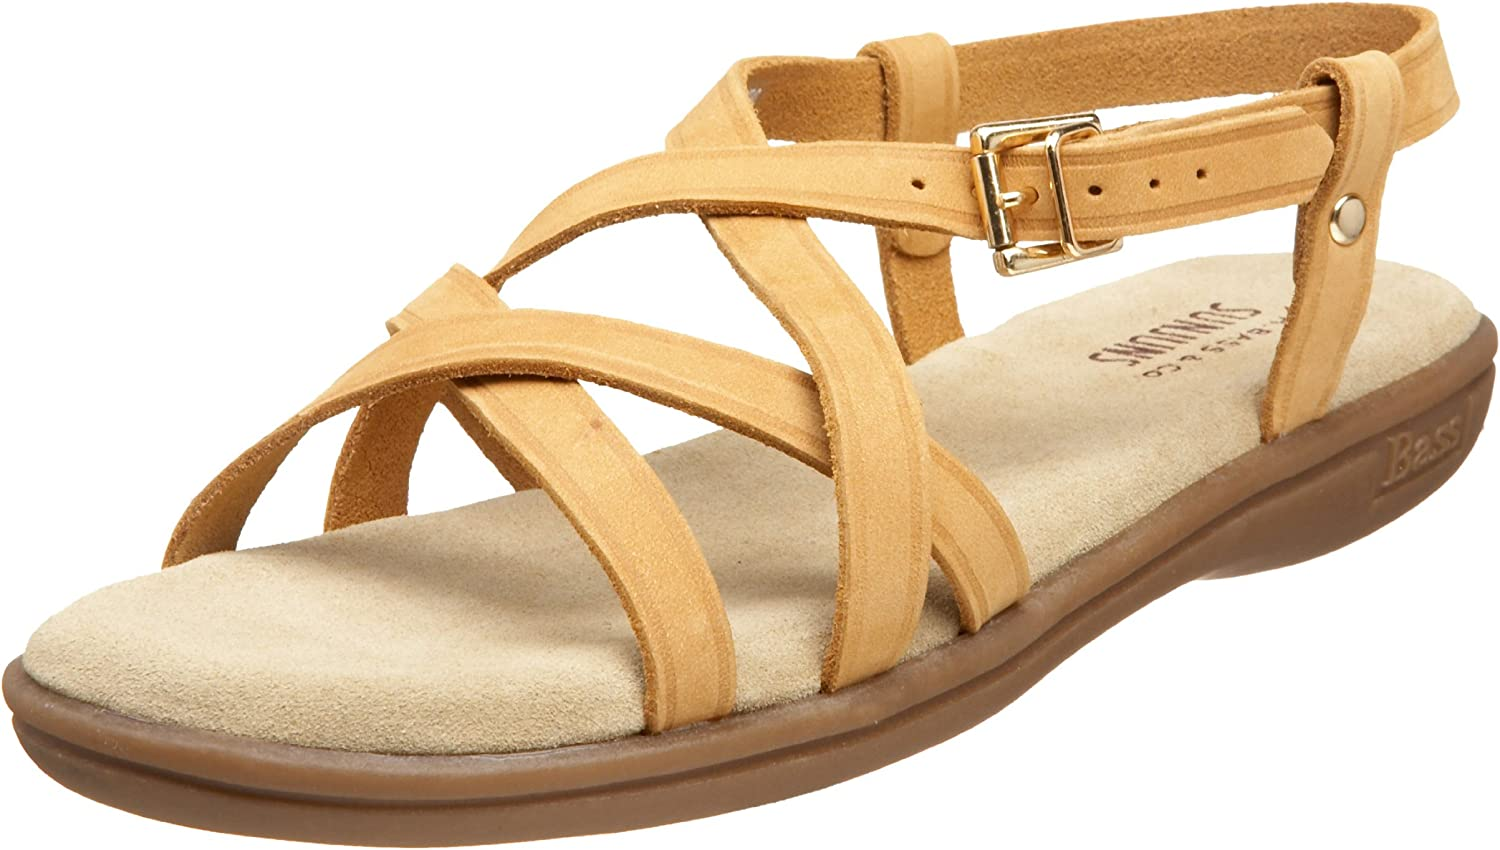 G.H. Inexpensive Bass Co. Sandal Margie Women's Excellence